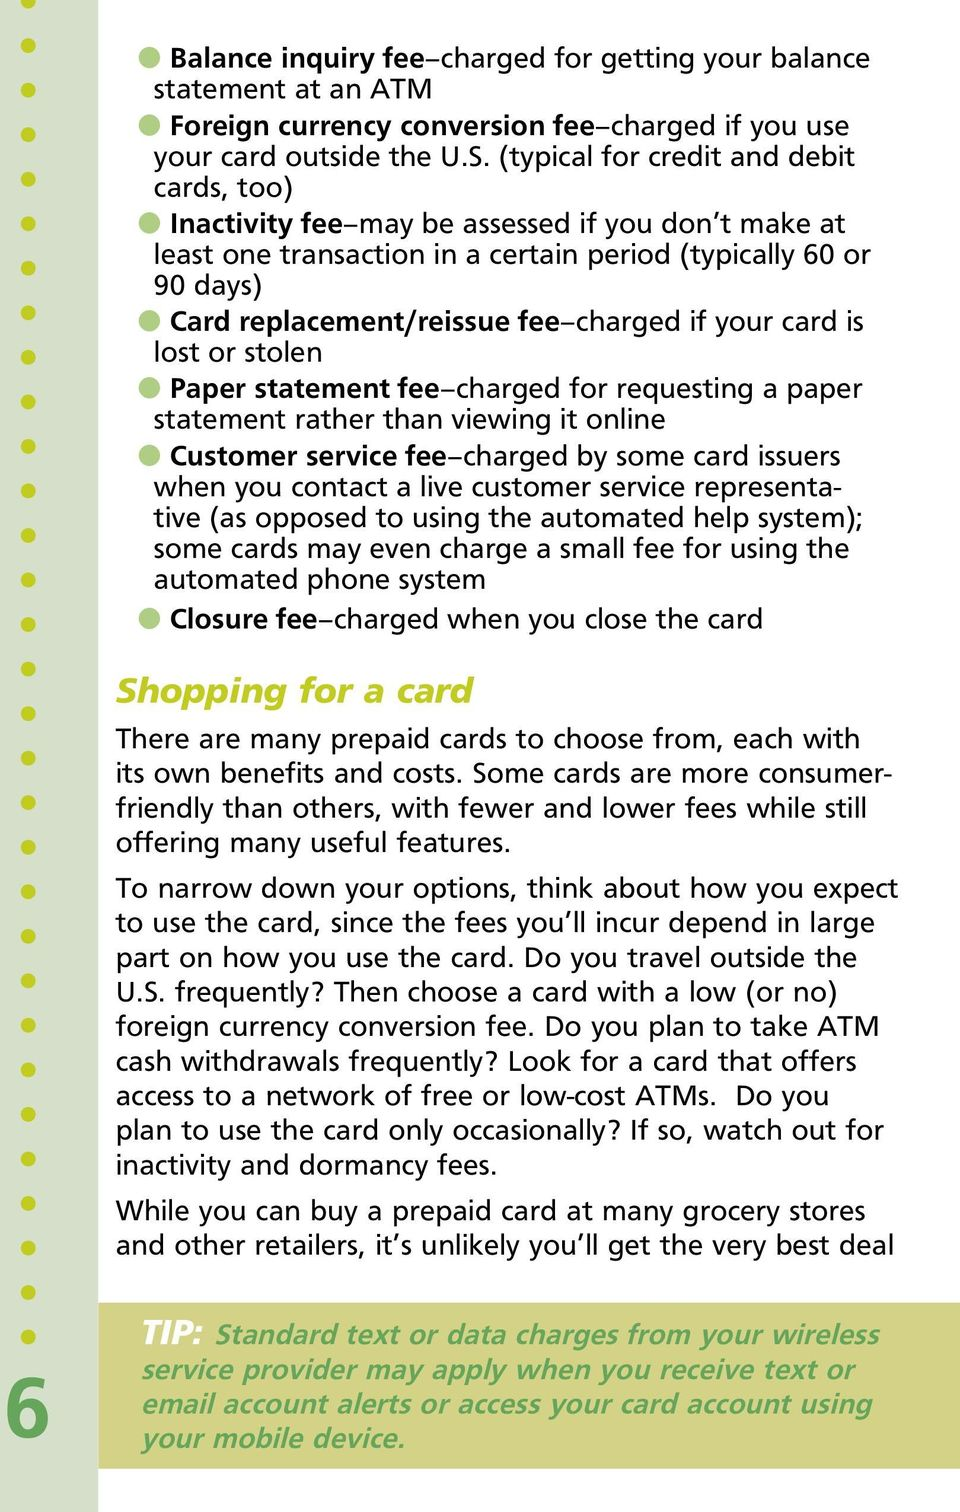 charged if your card is lost or stolen l Paper statement fee charged for requesting a paper statement rather than viewing it online l Customer service fee charged by some card issuers when you